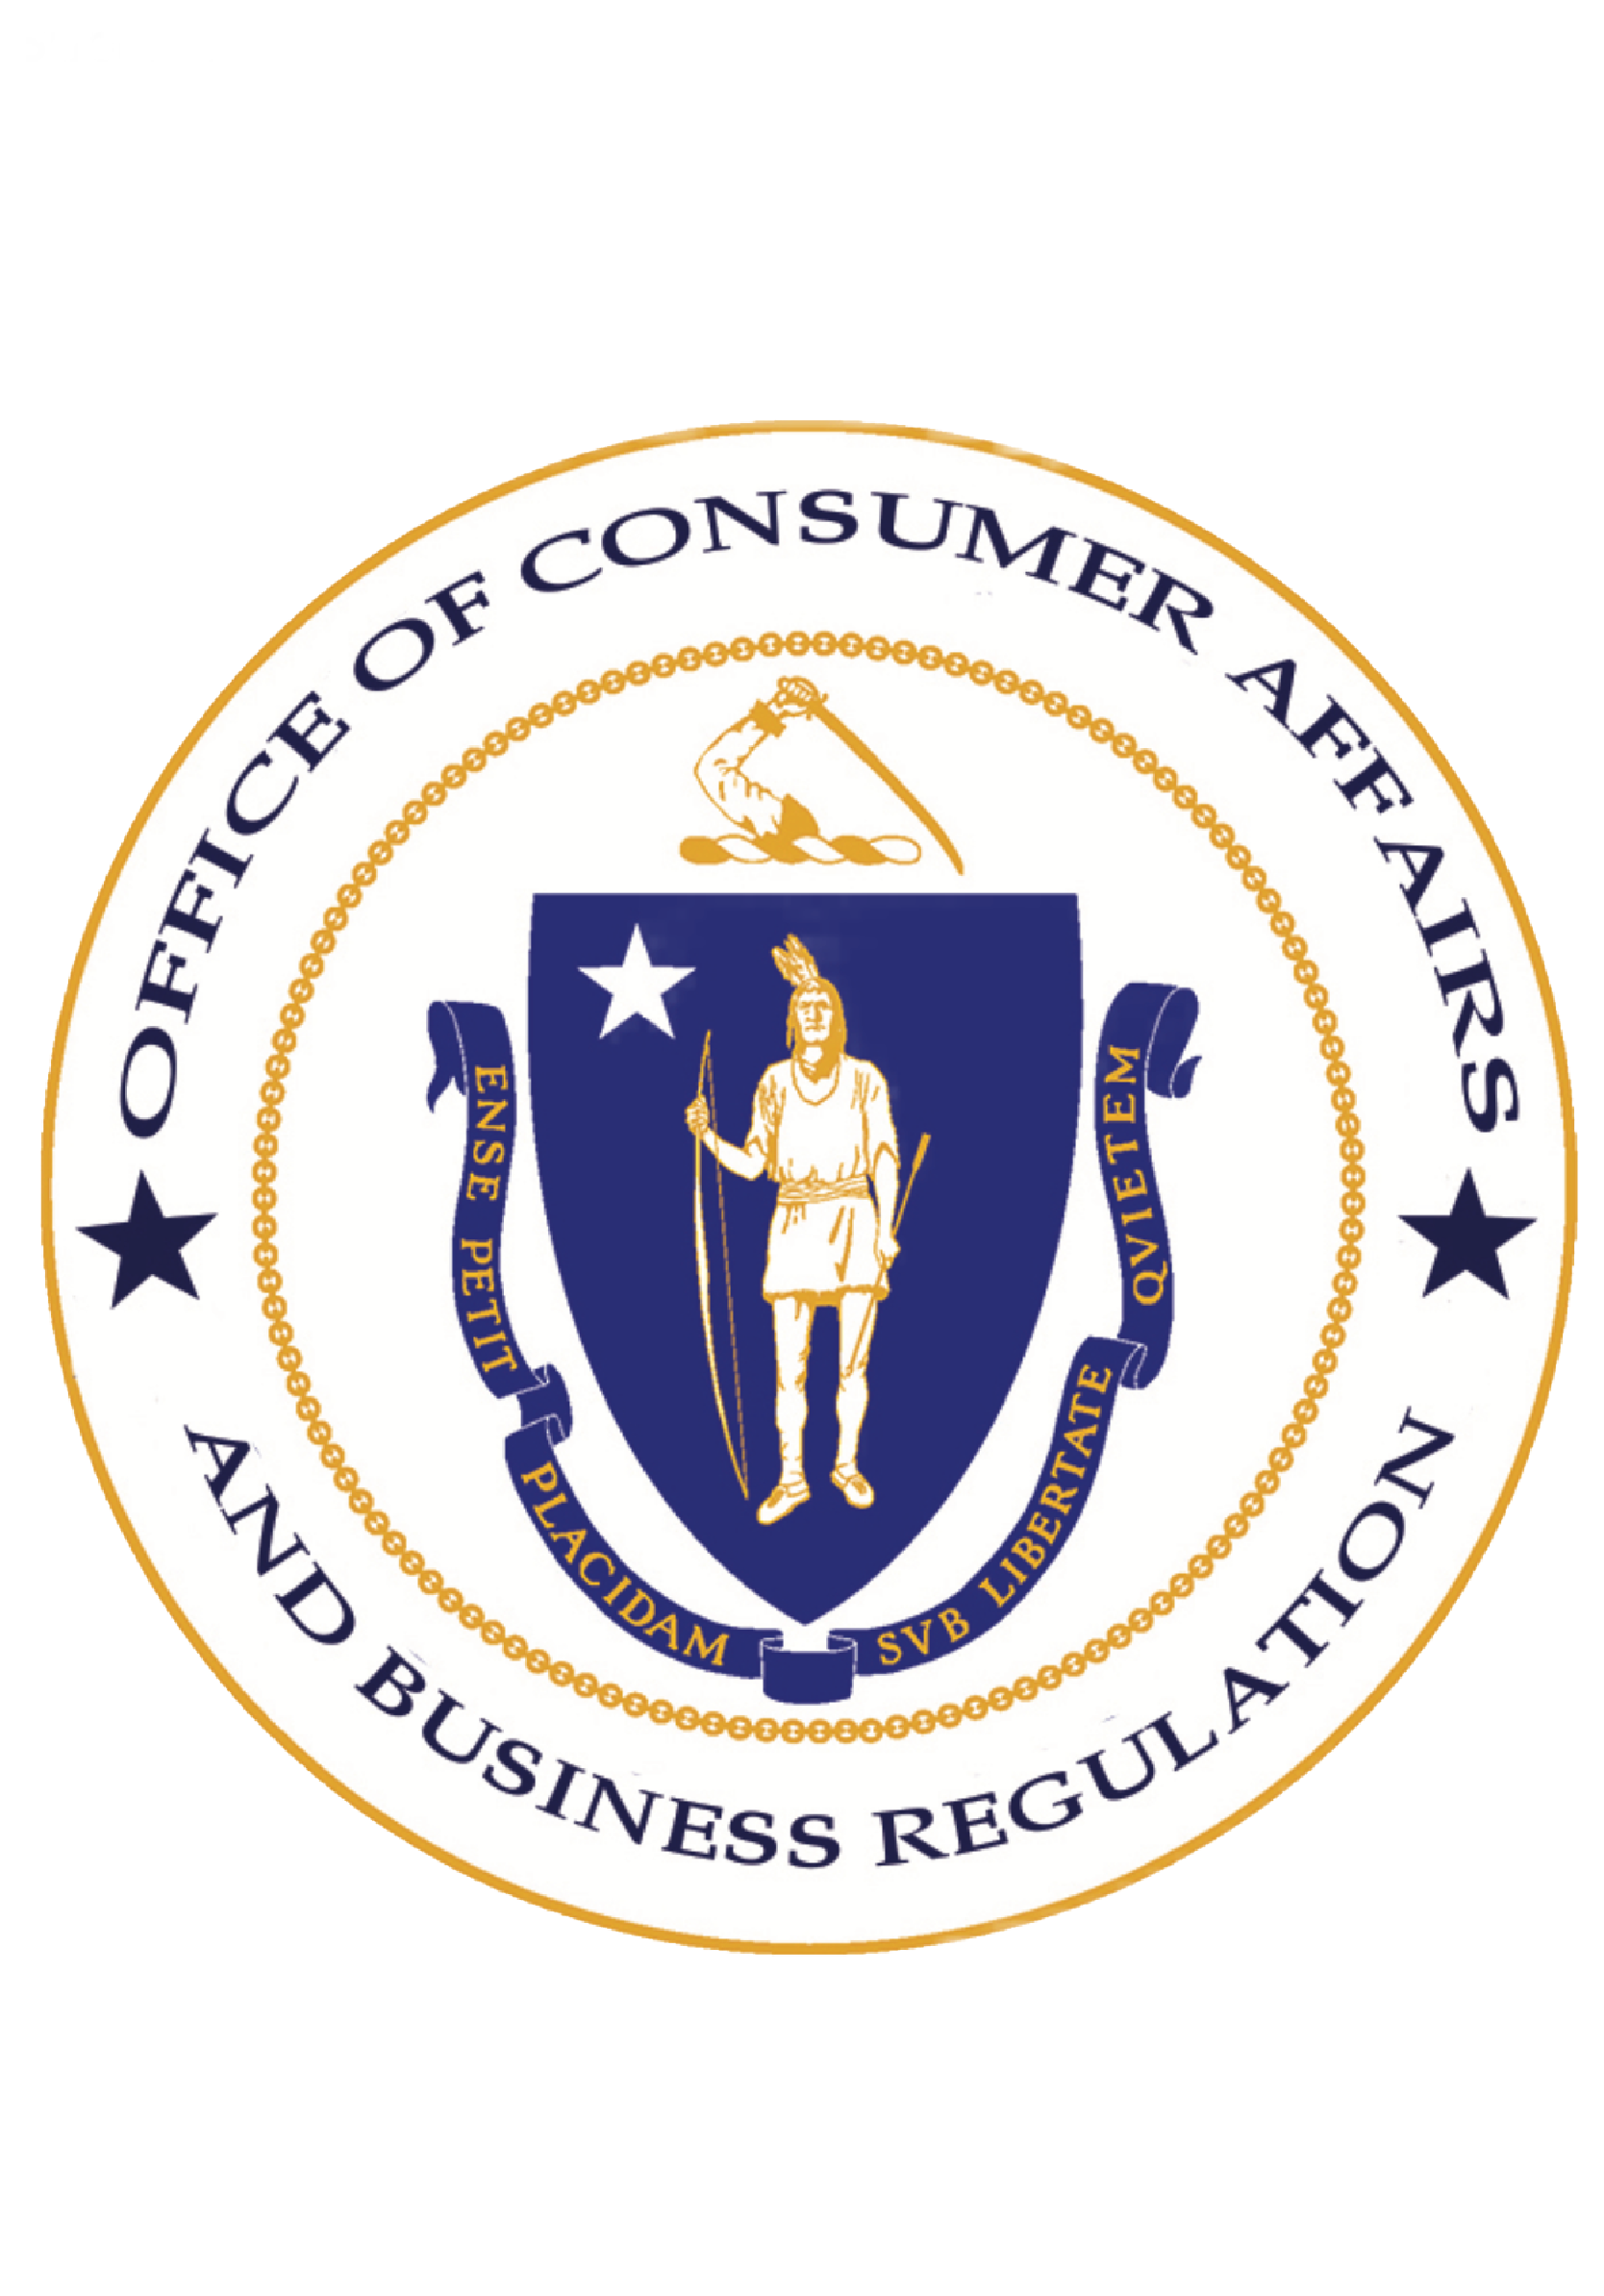 Office of Consumer Affairs and Business Regulation